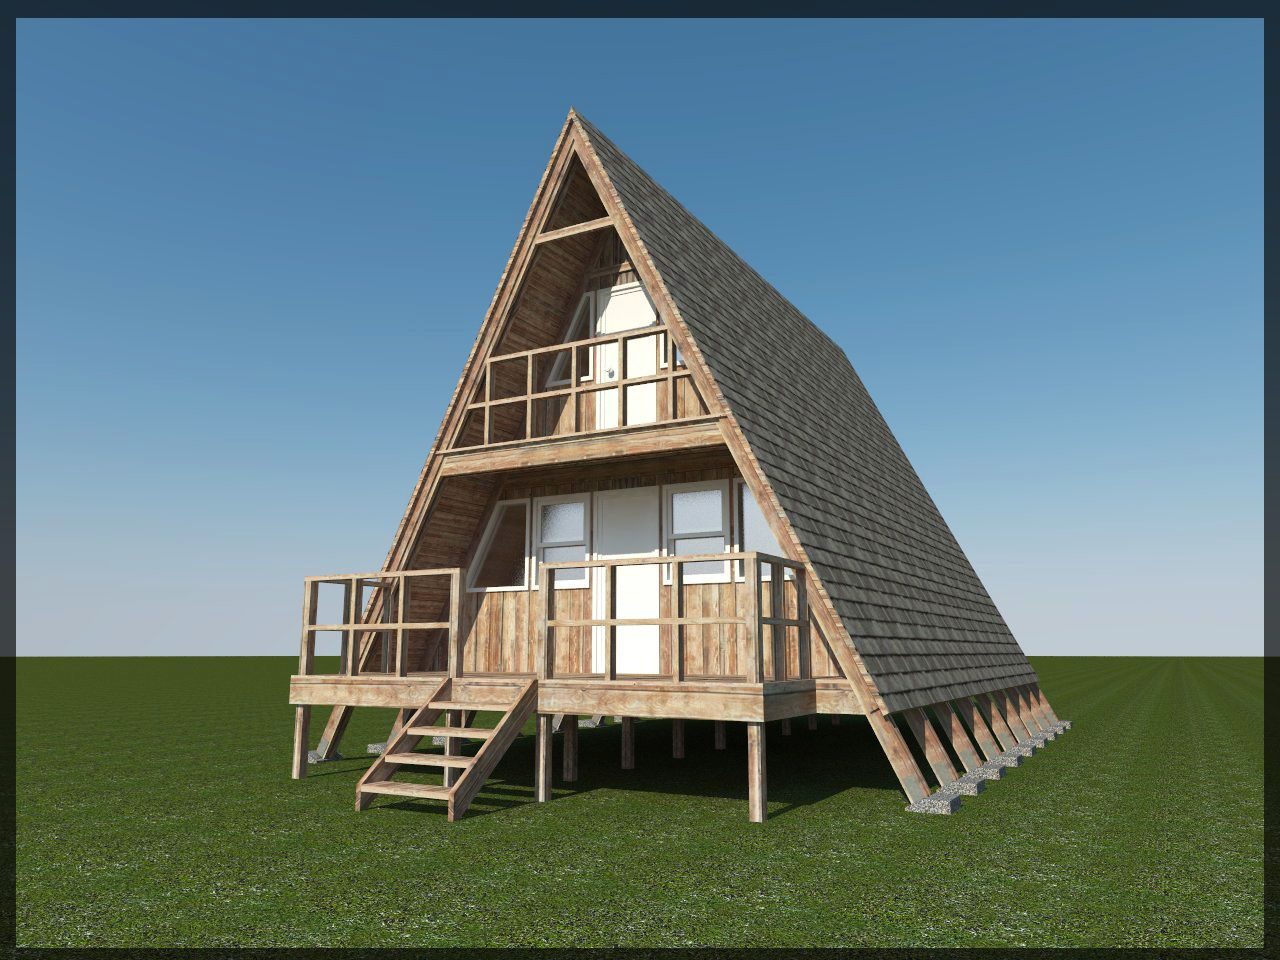 Build Your Own 24 39 X 21 39 A Frame 2 Story Cabin Diy Plans